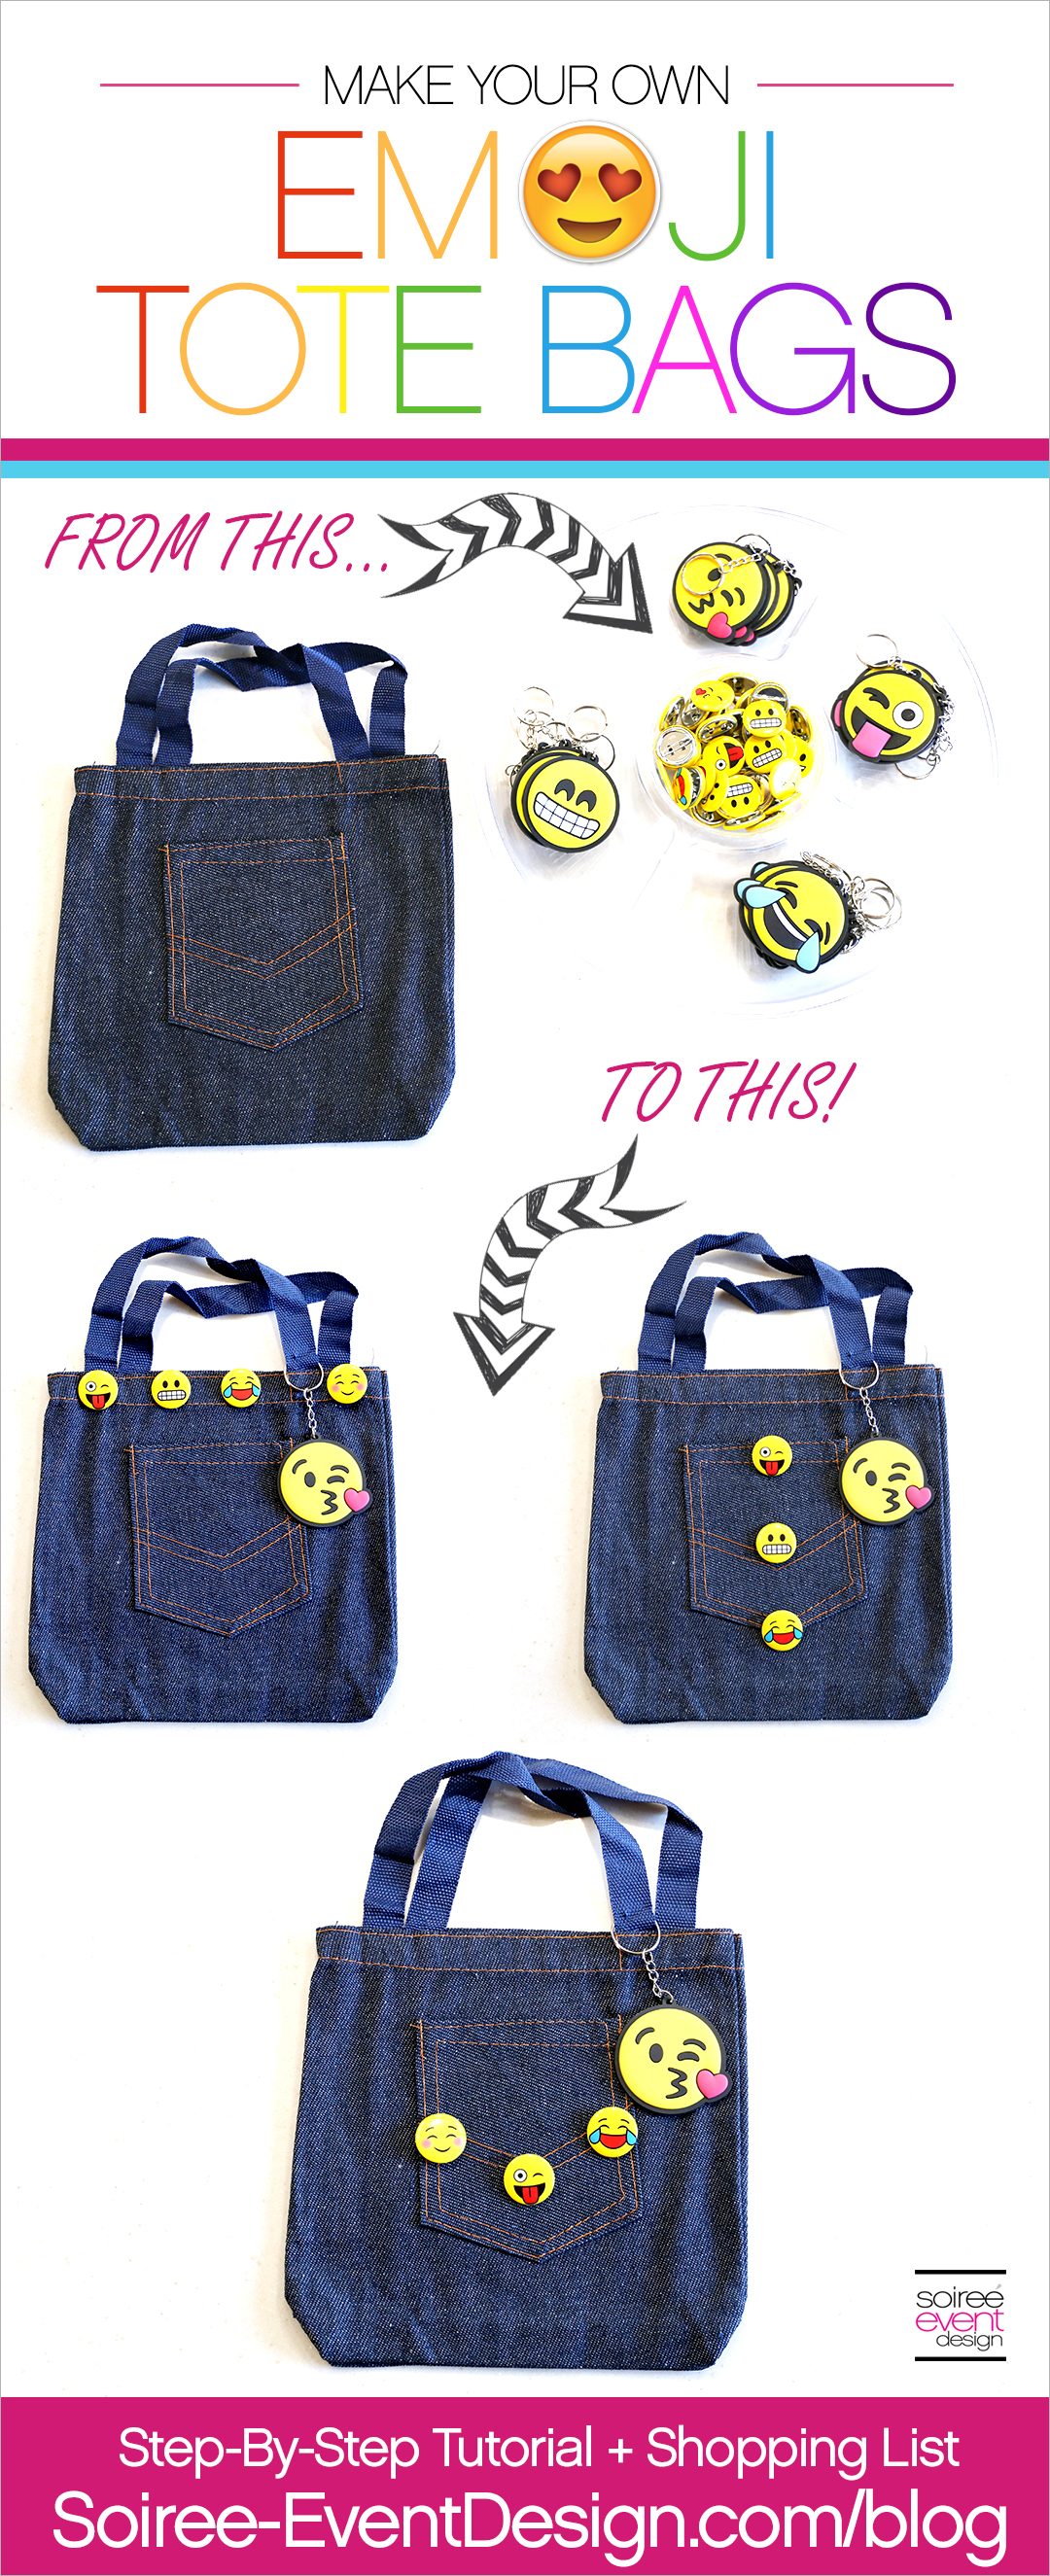 DIY Emoji Denim Tote Bag Tutorial